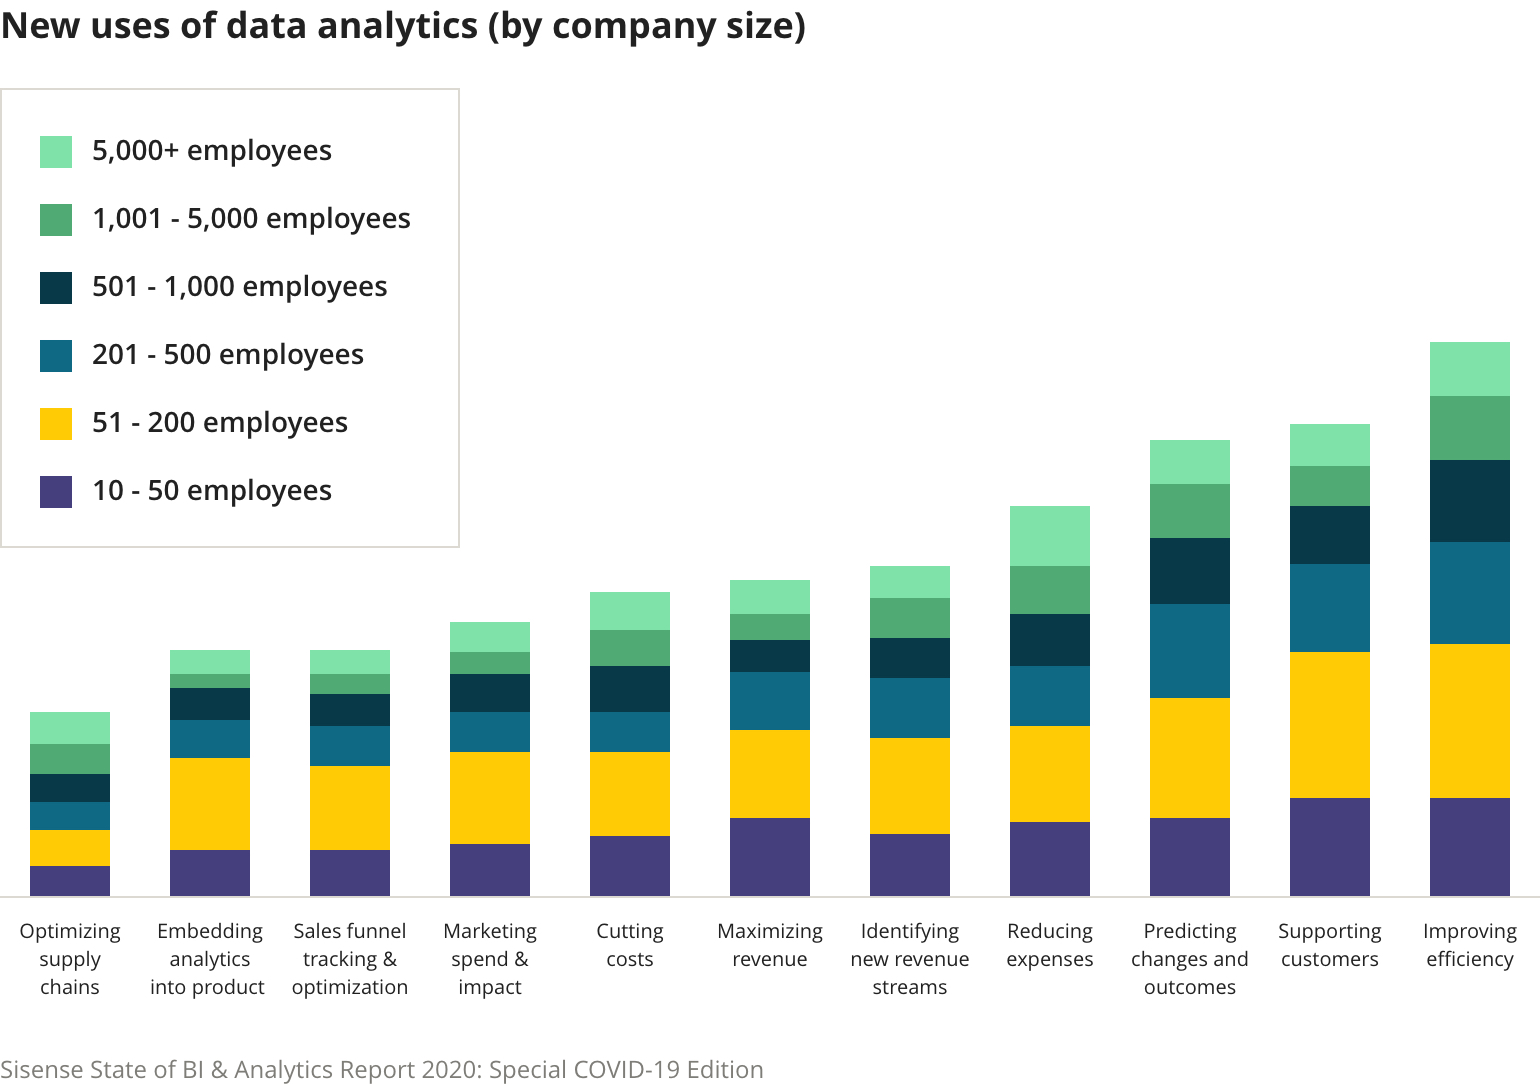 New data use cases by company size